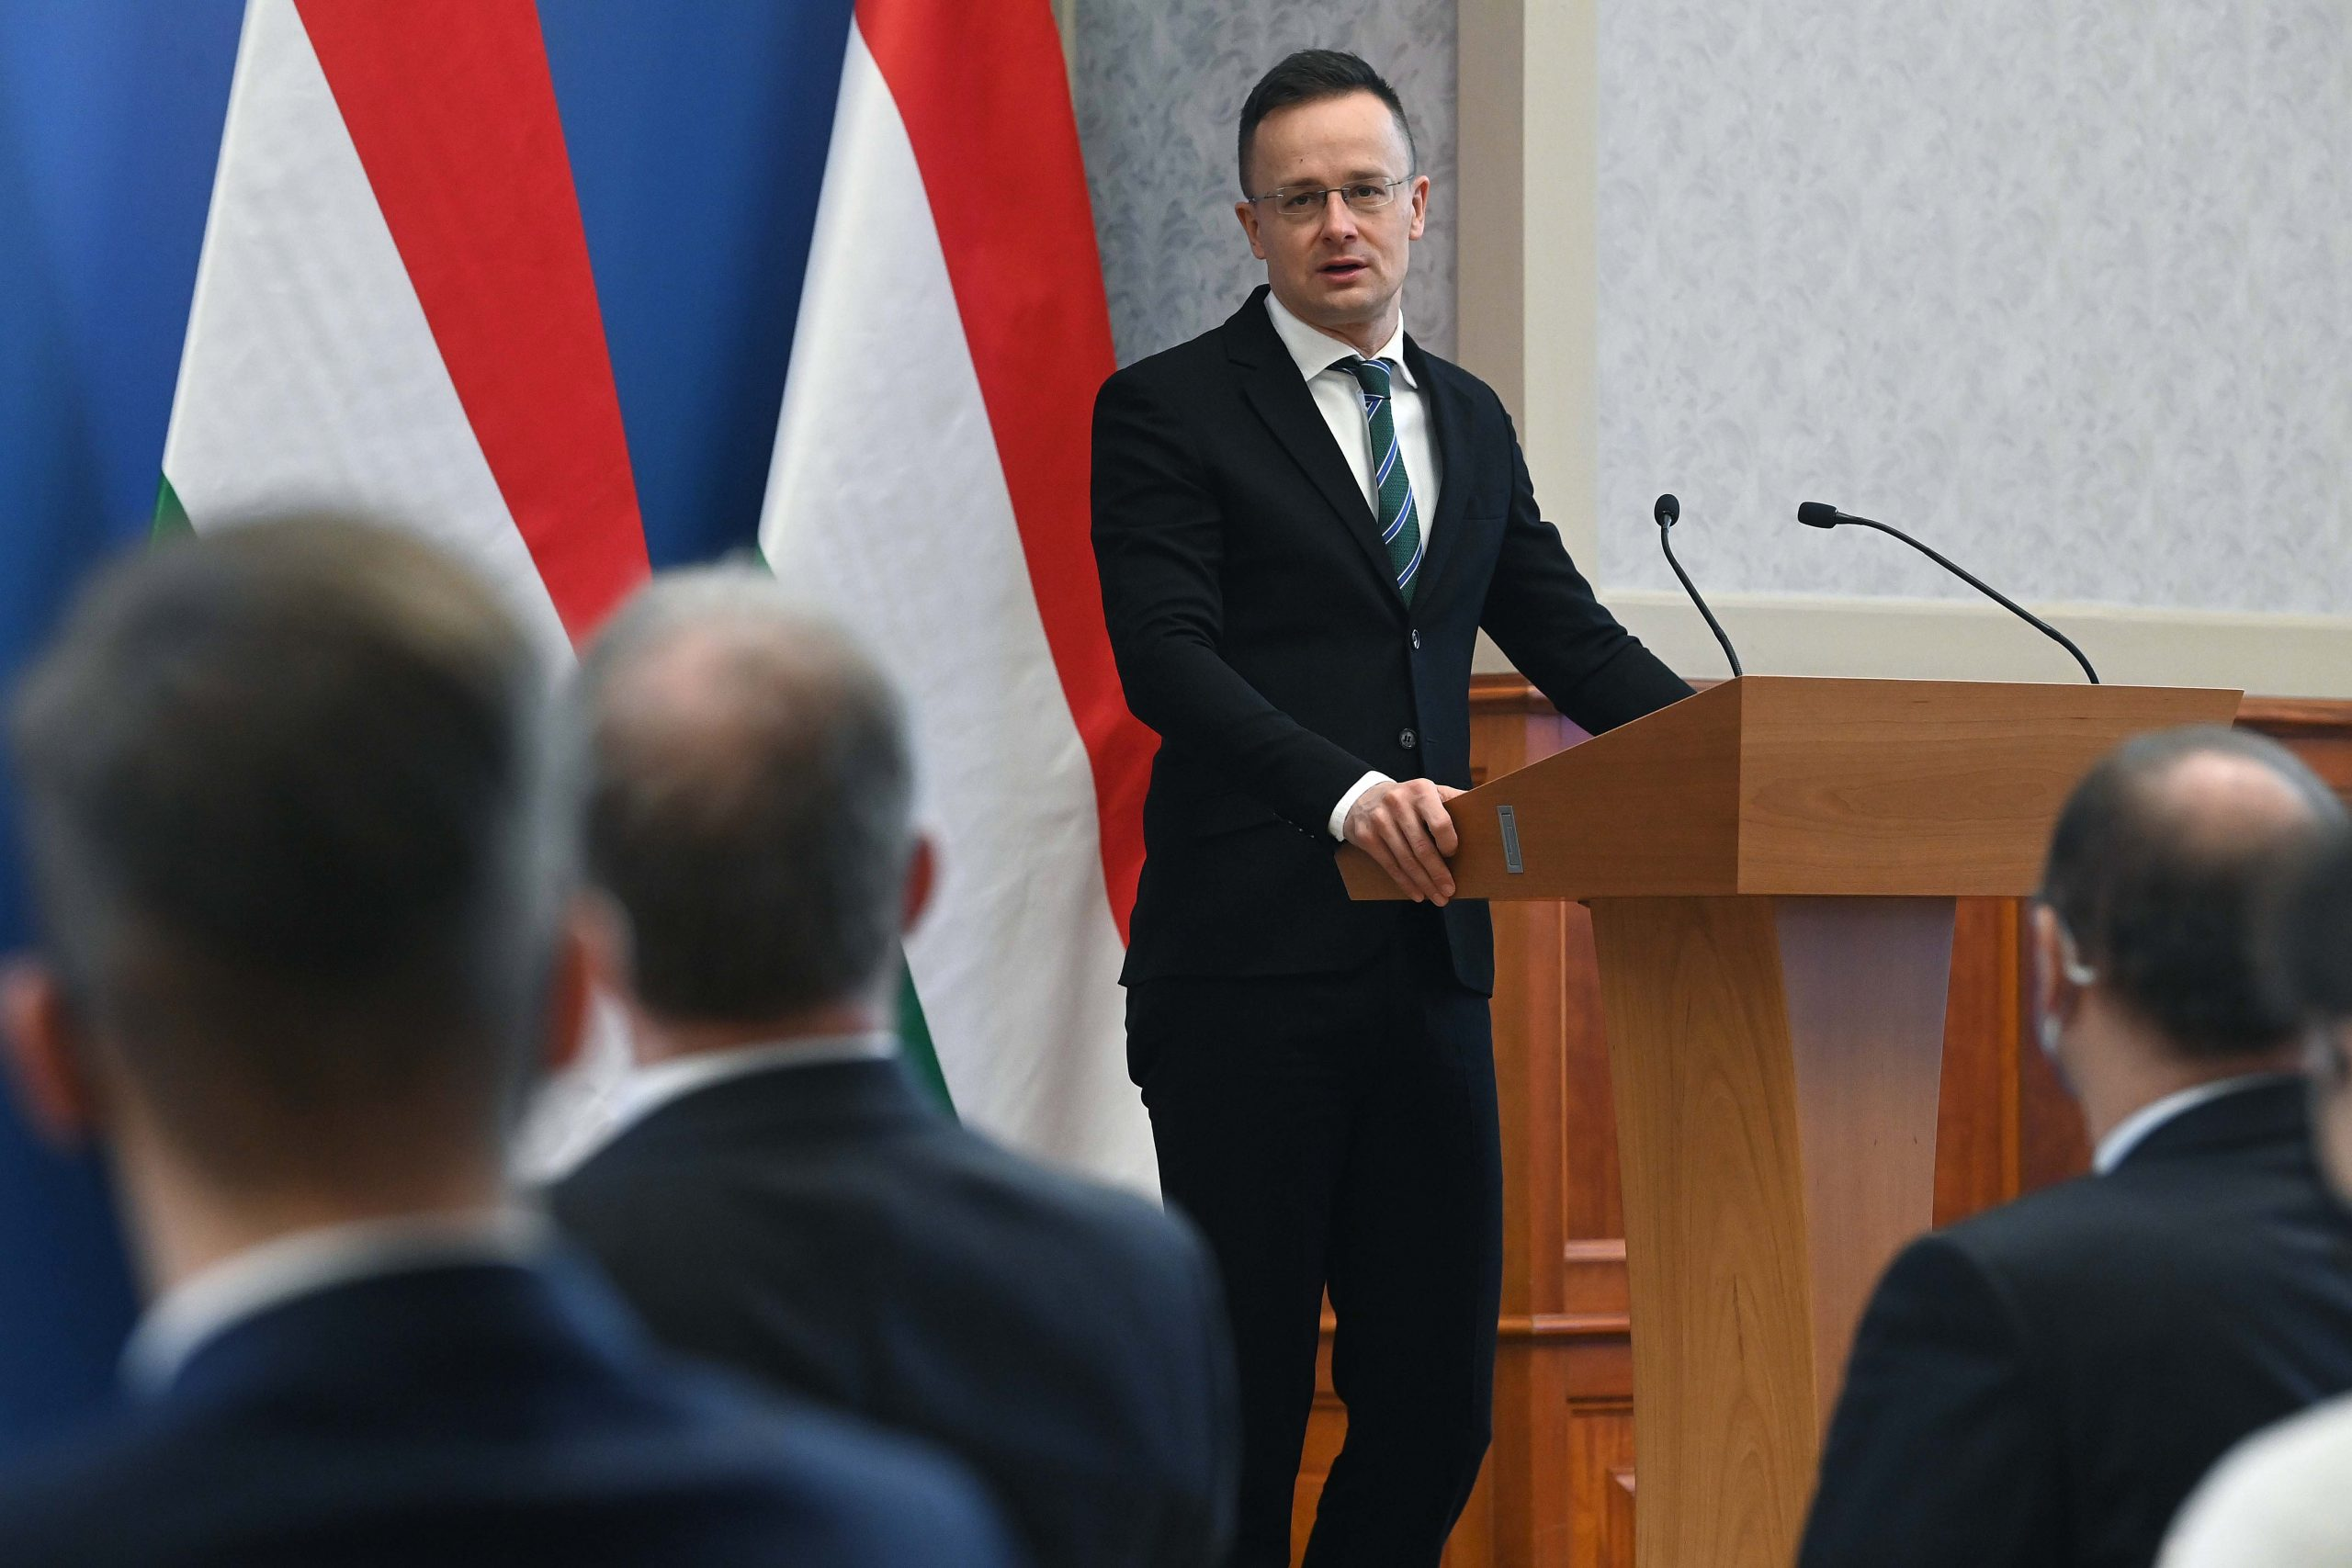 Foreign Minister Szijjártó: Hungary Submits Project Proposals for Three Seas Investment Fund